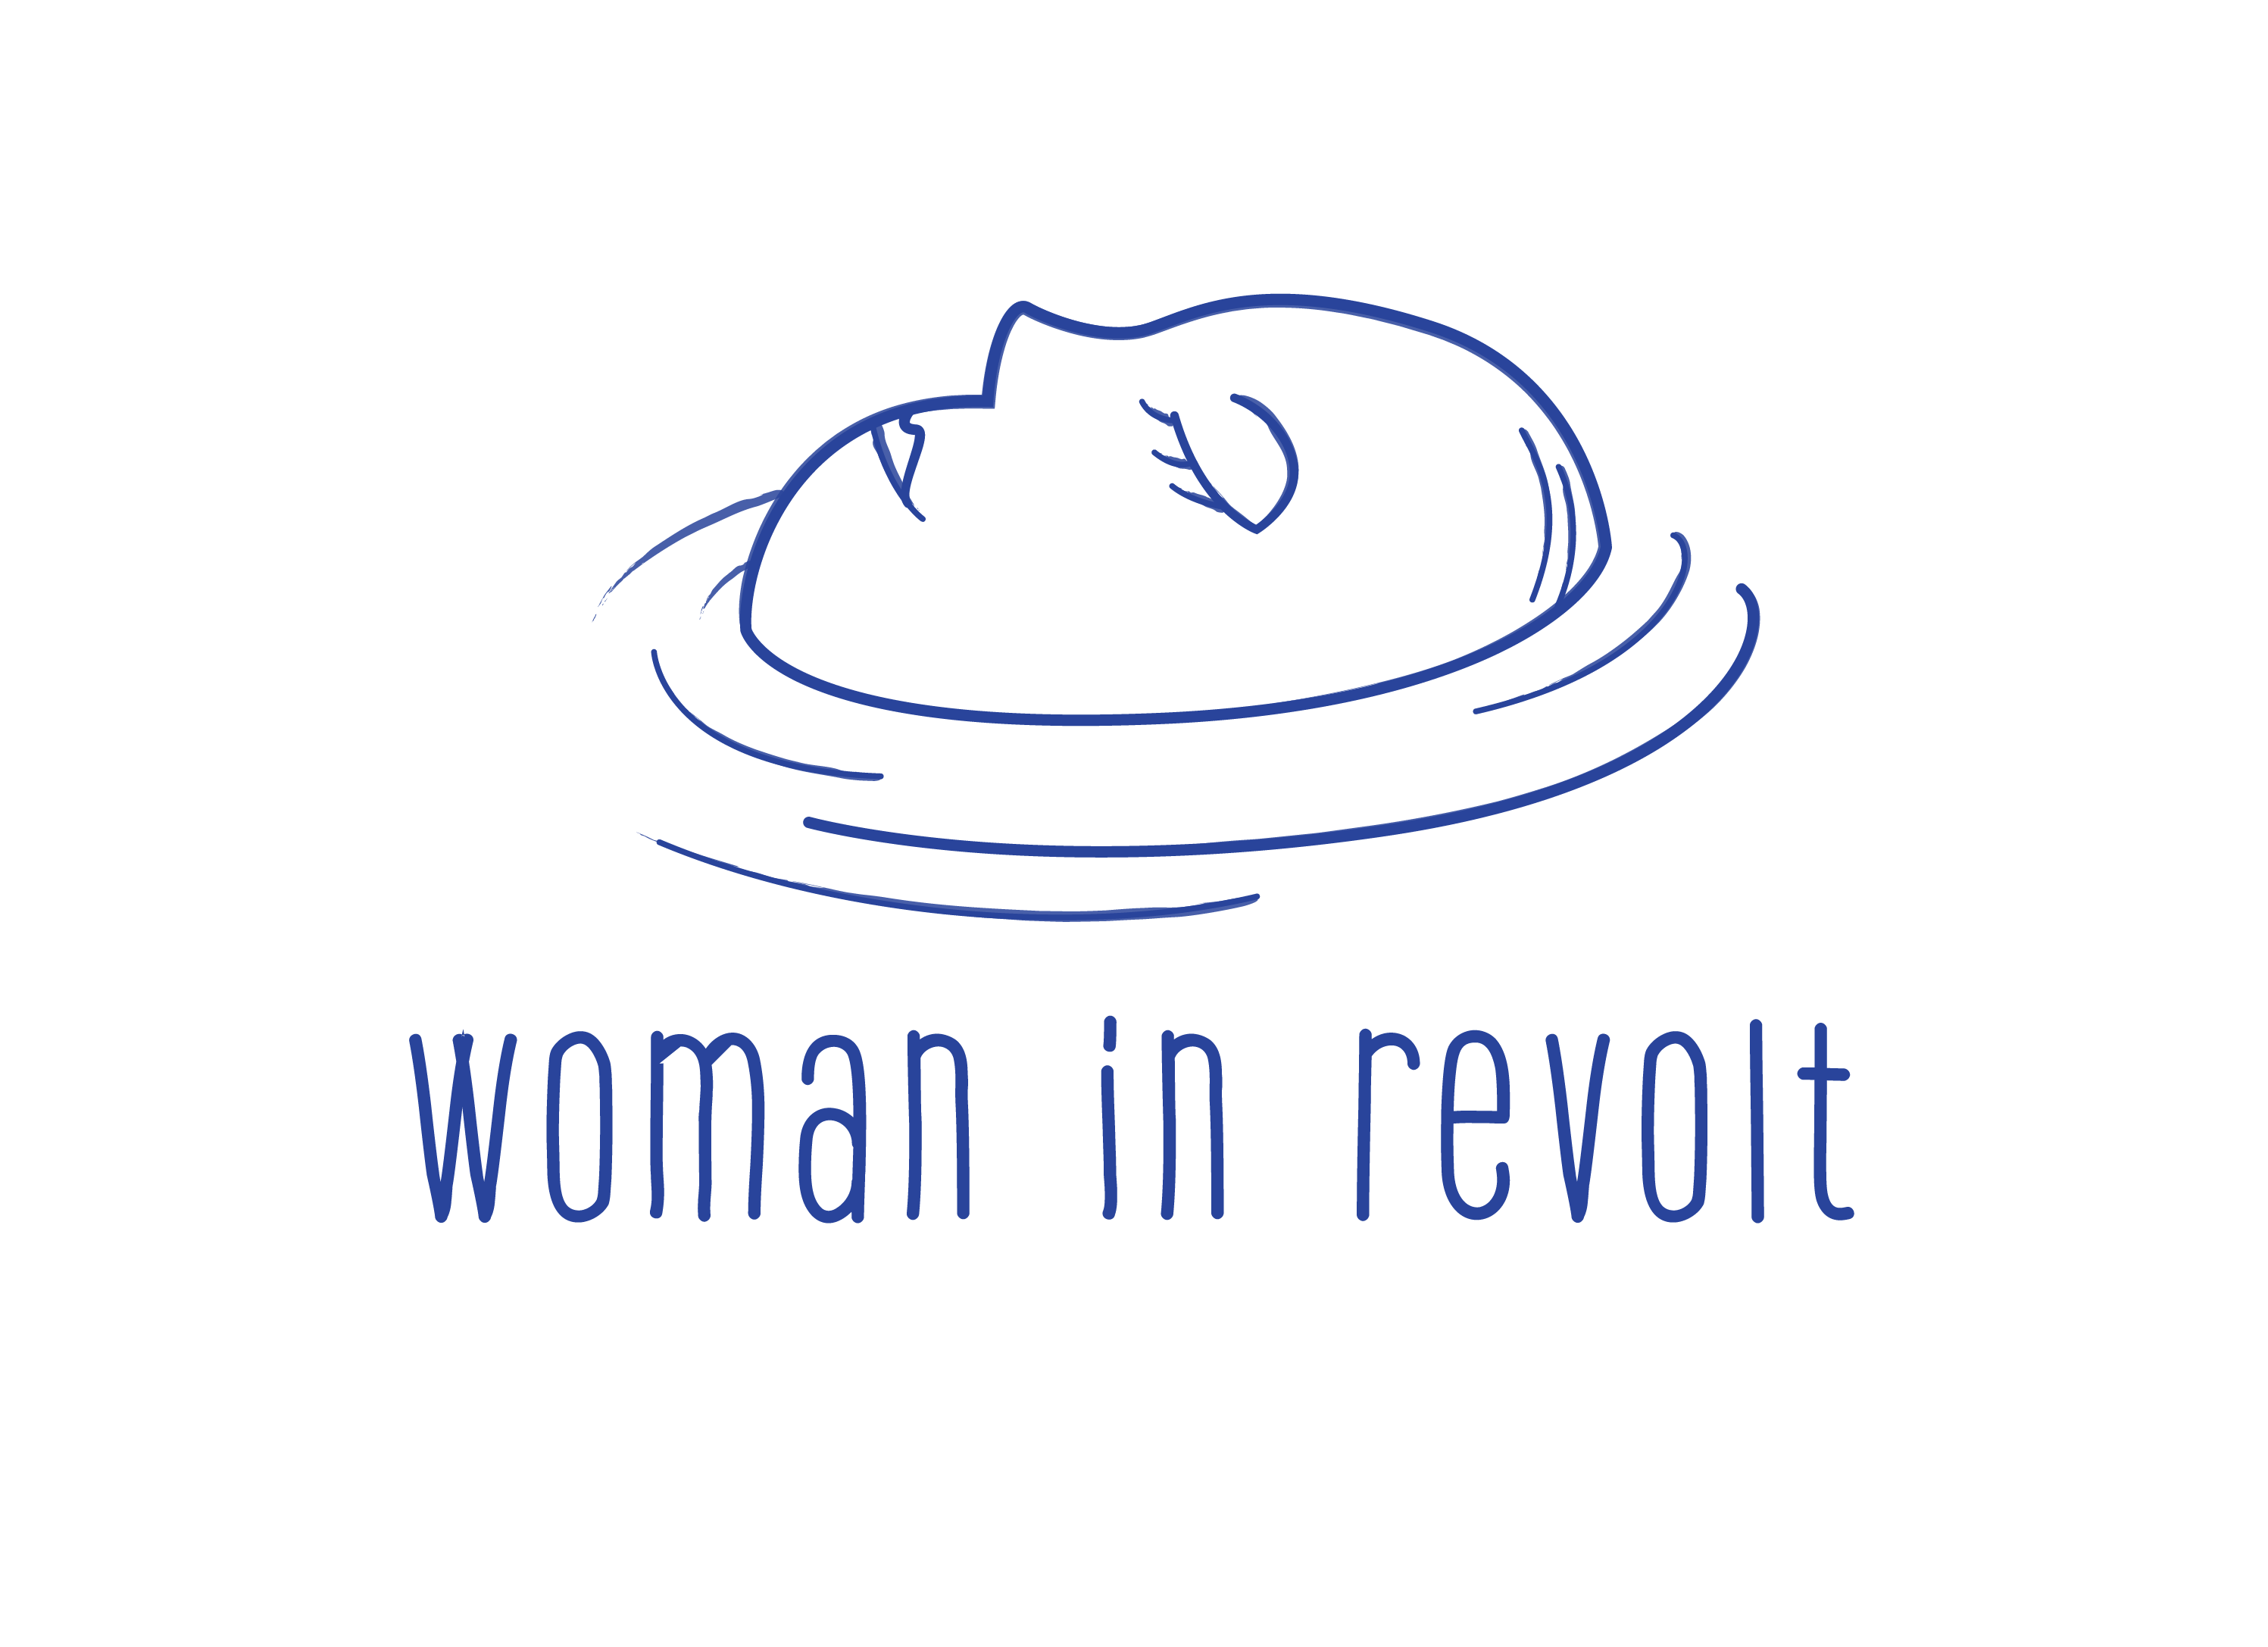 Woman in Revolt